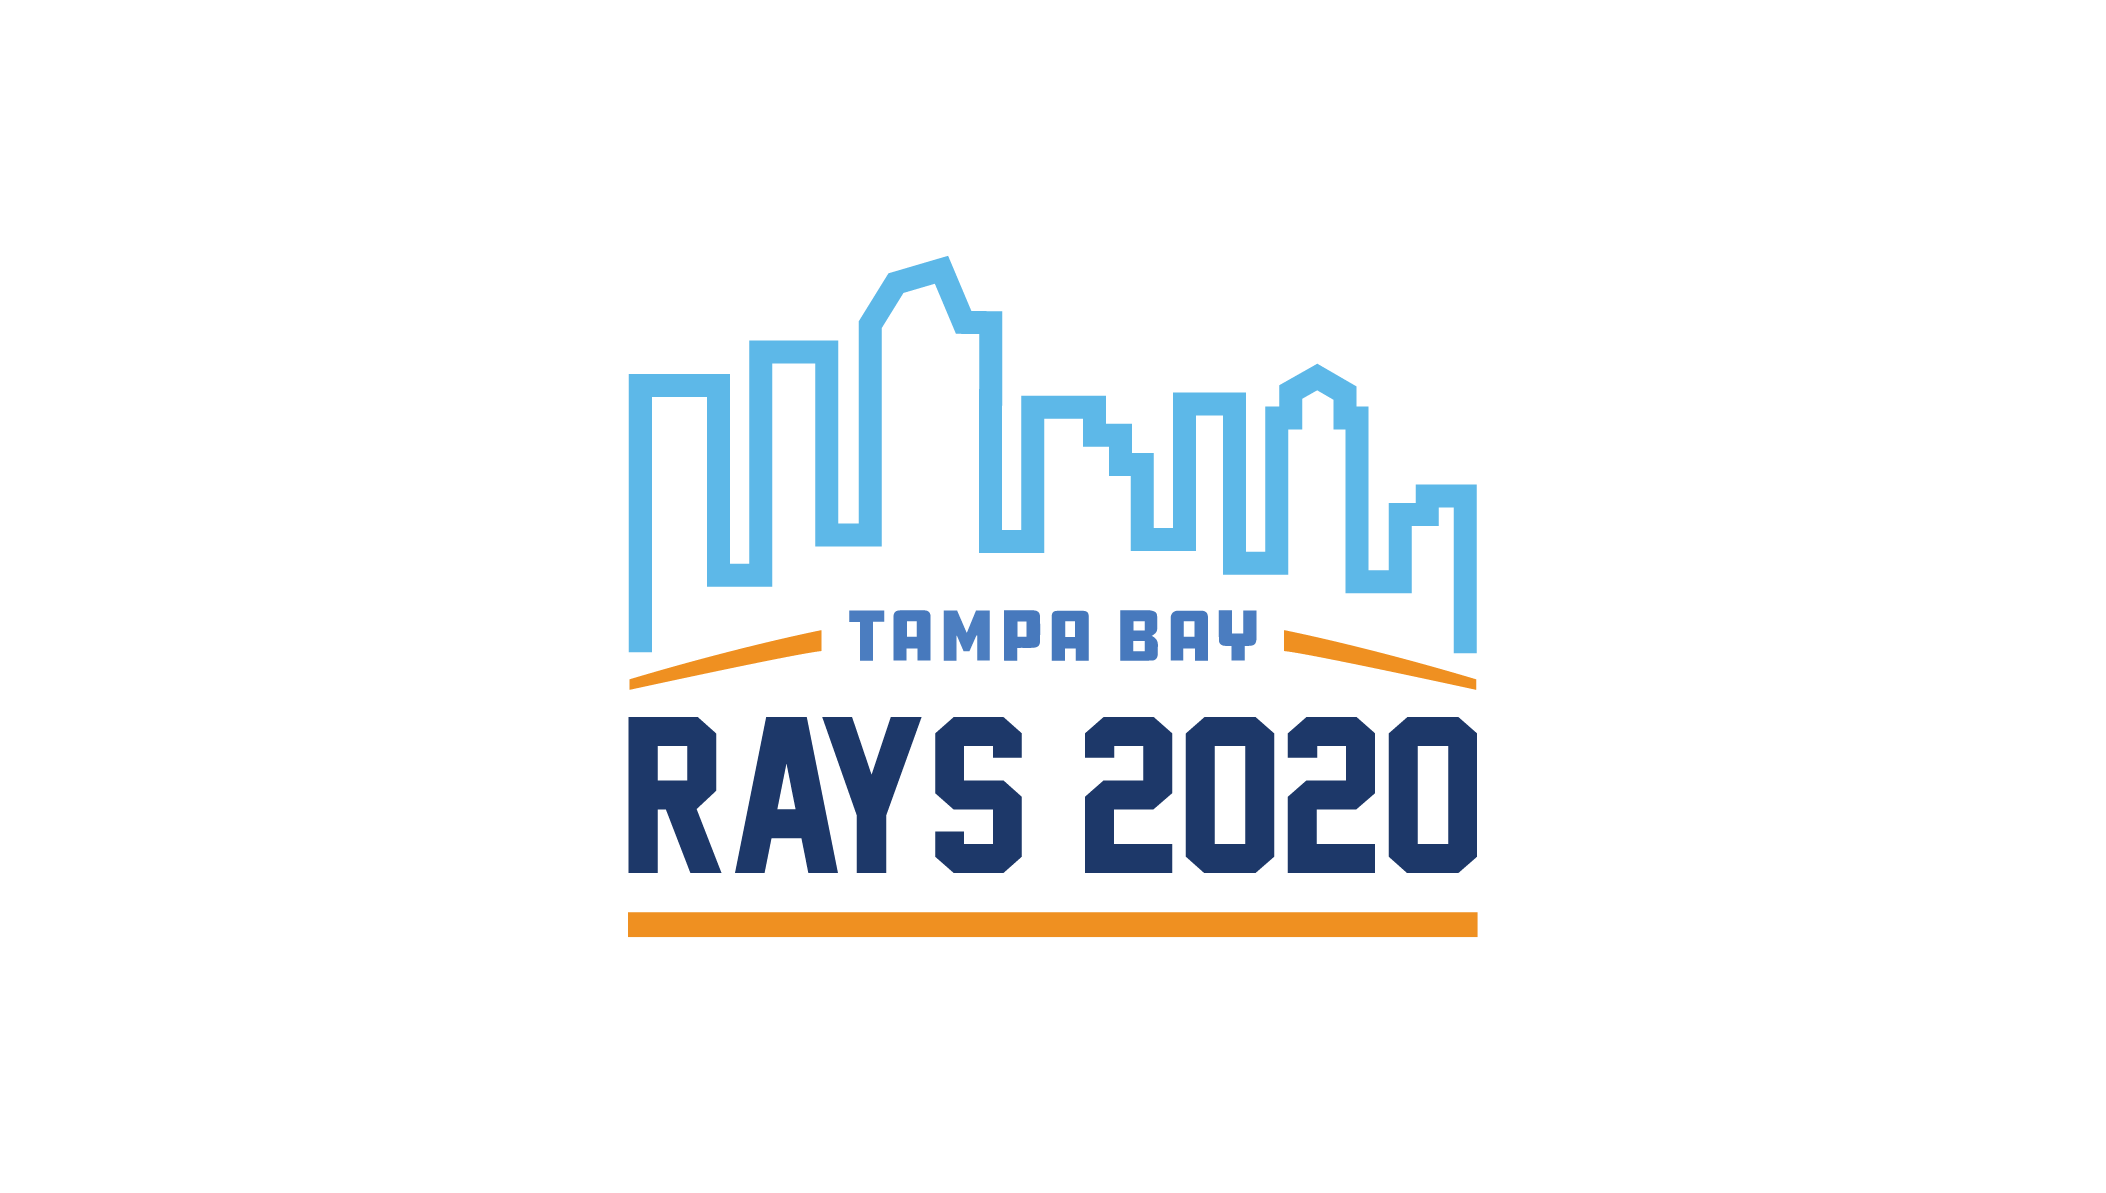 Tampa Bay Rays 2020